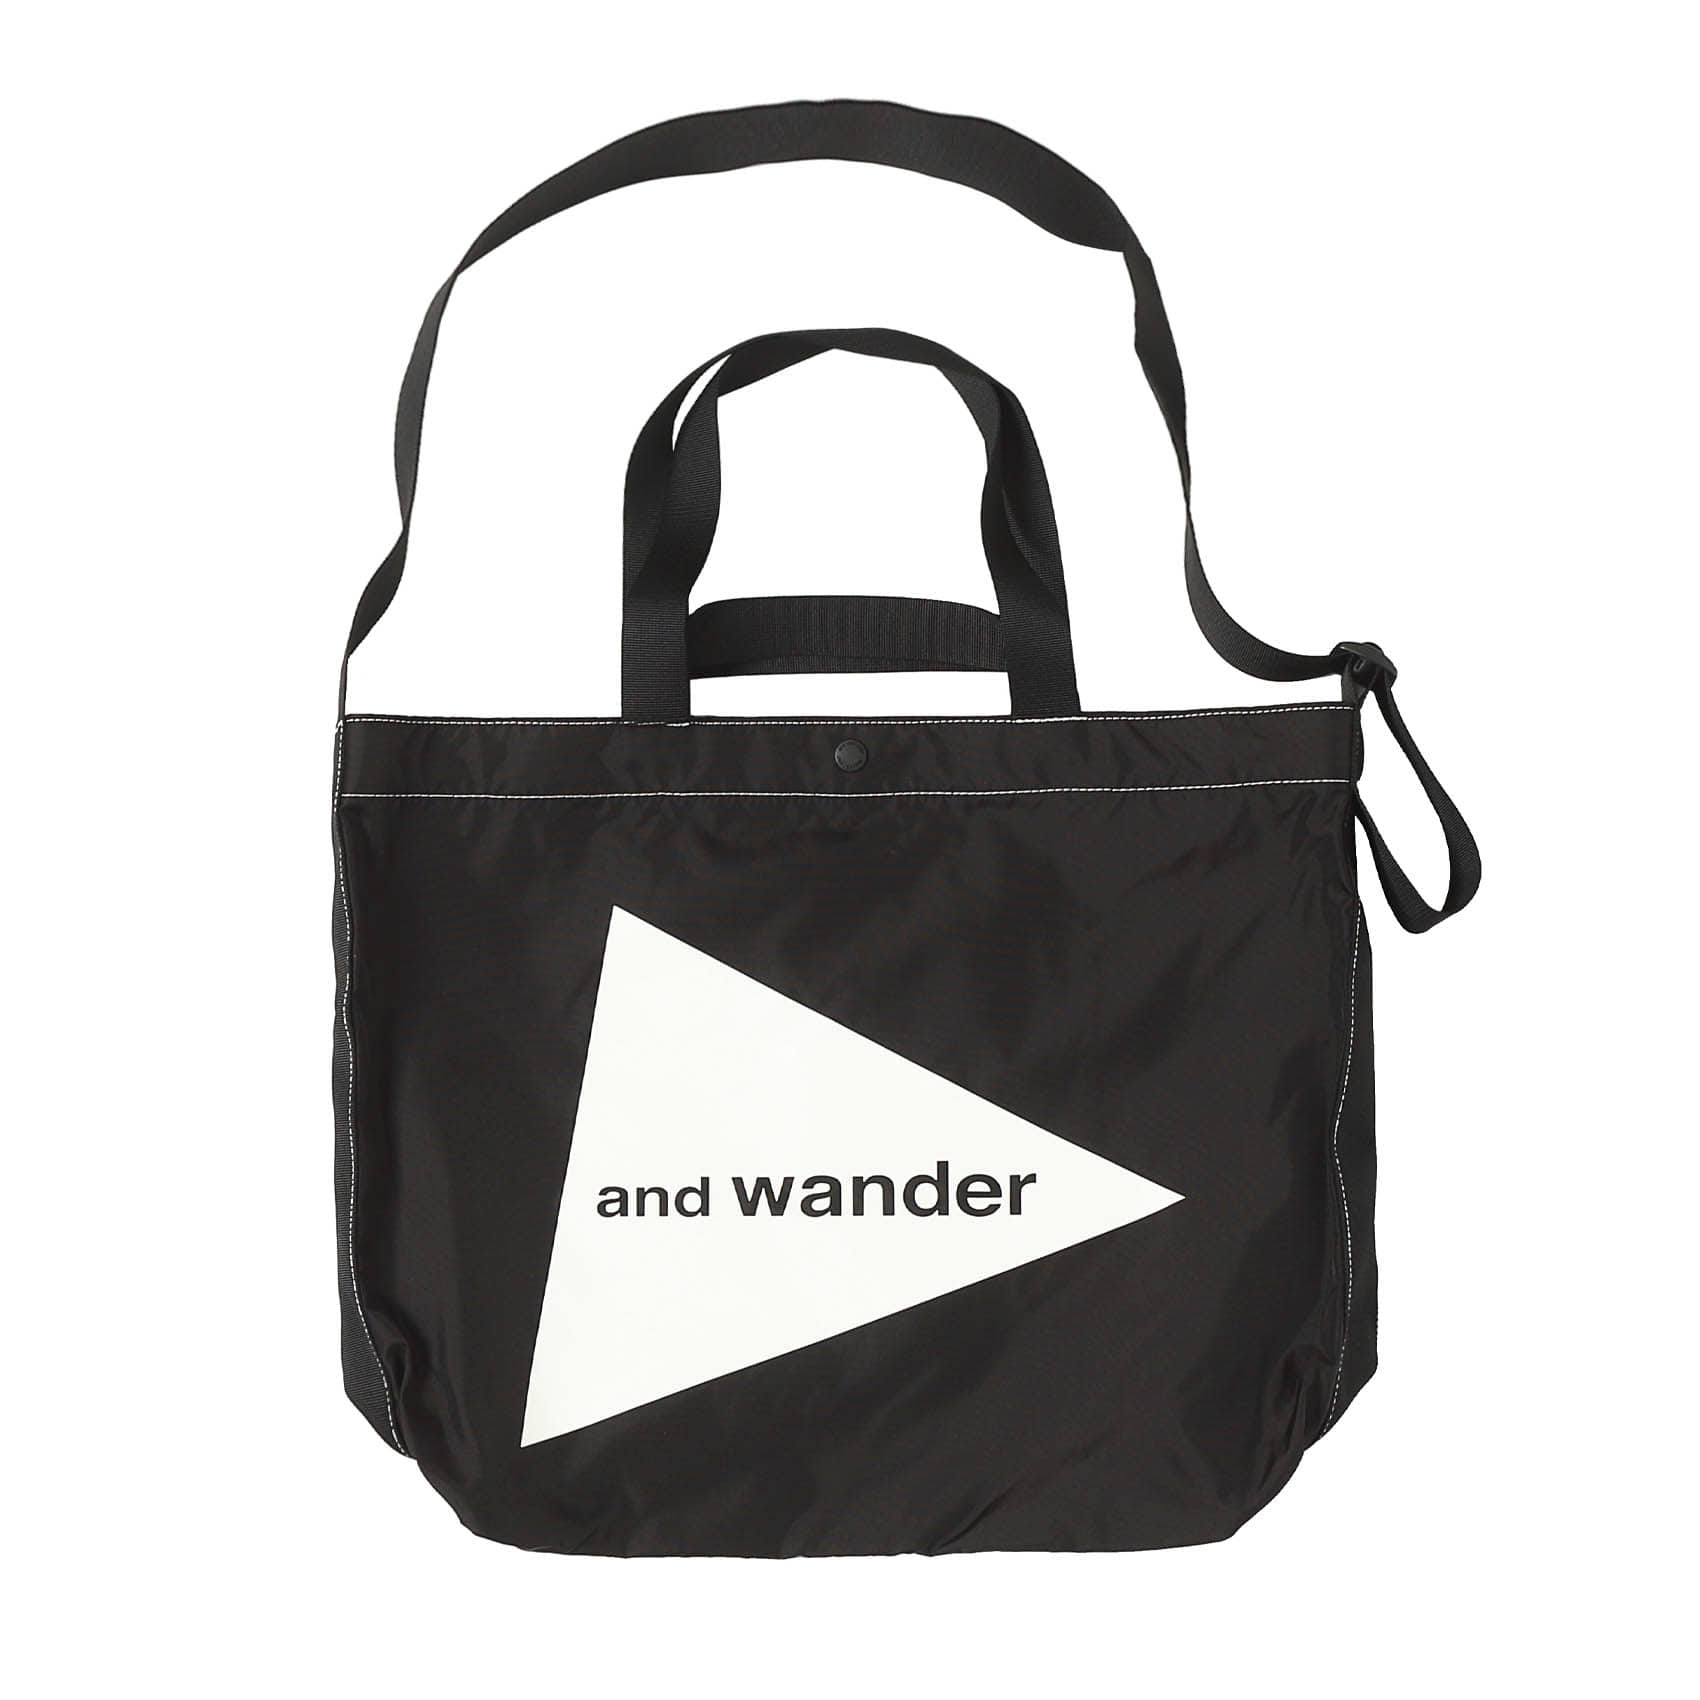 CORDURA BIG LOGO TOTE BAG - BLACK